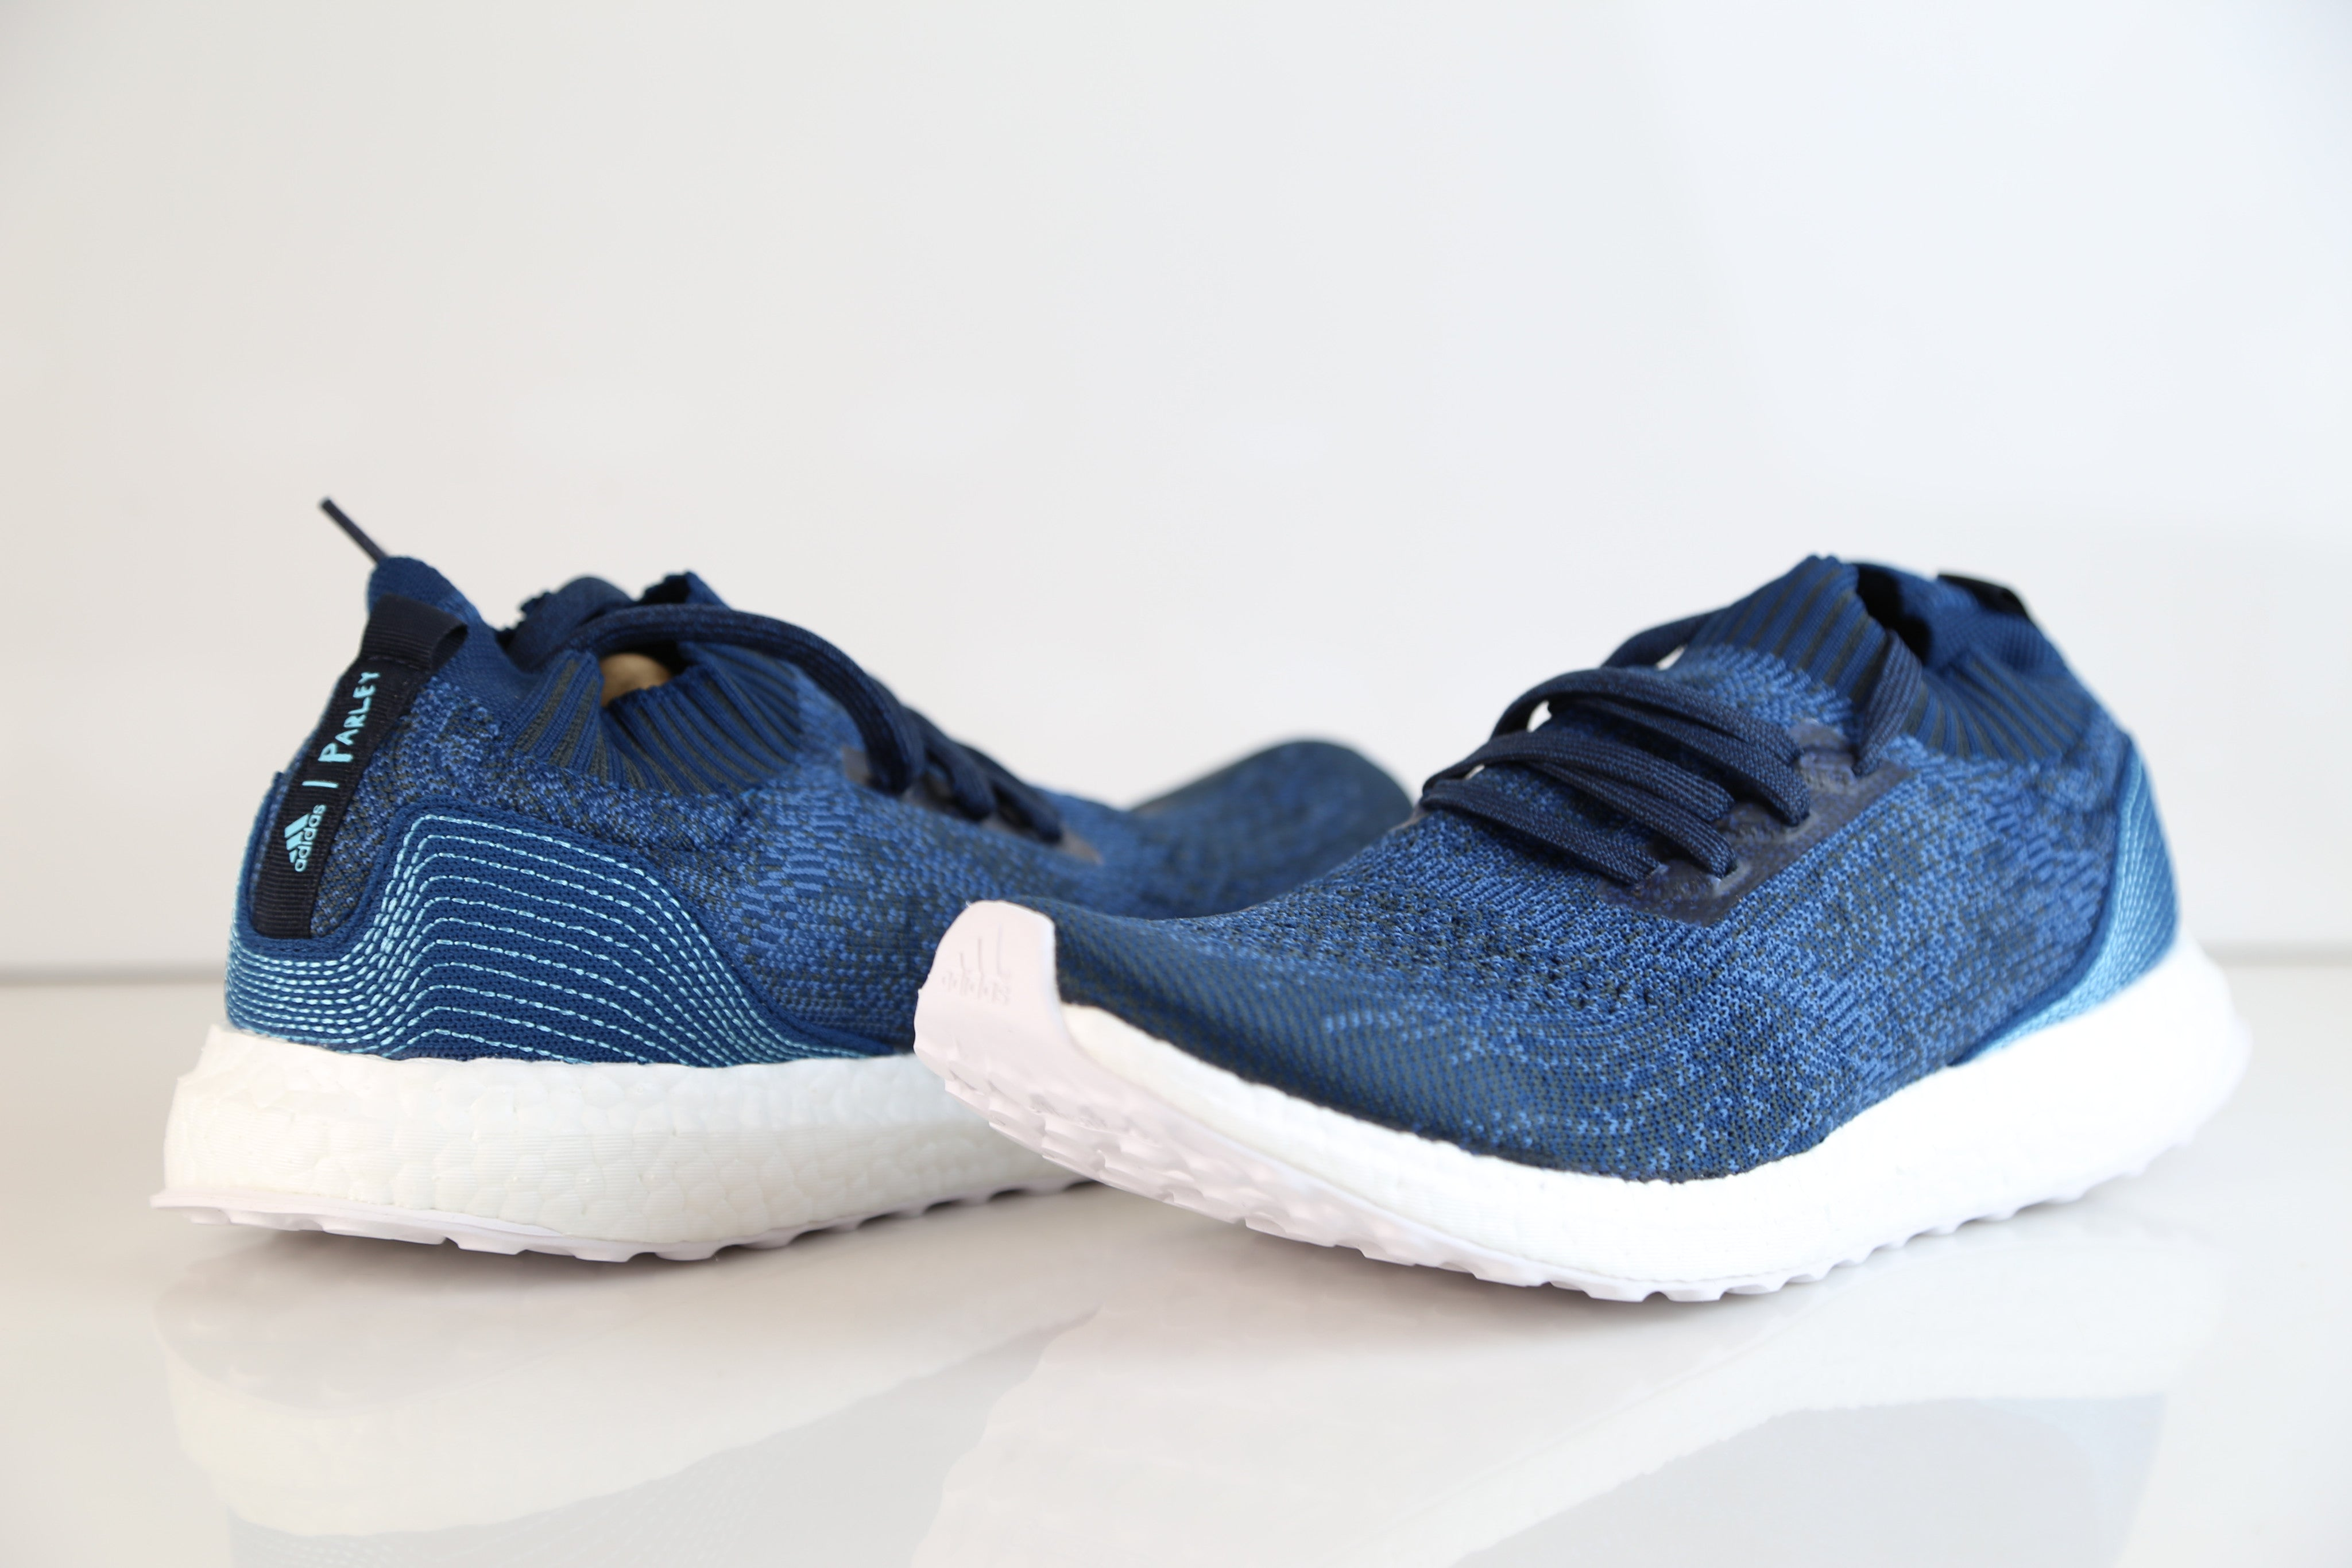 6b0b05eacfdb5 Adidas Ultra Boost Uncaged Parley Legend Blue Core BY3057